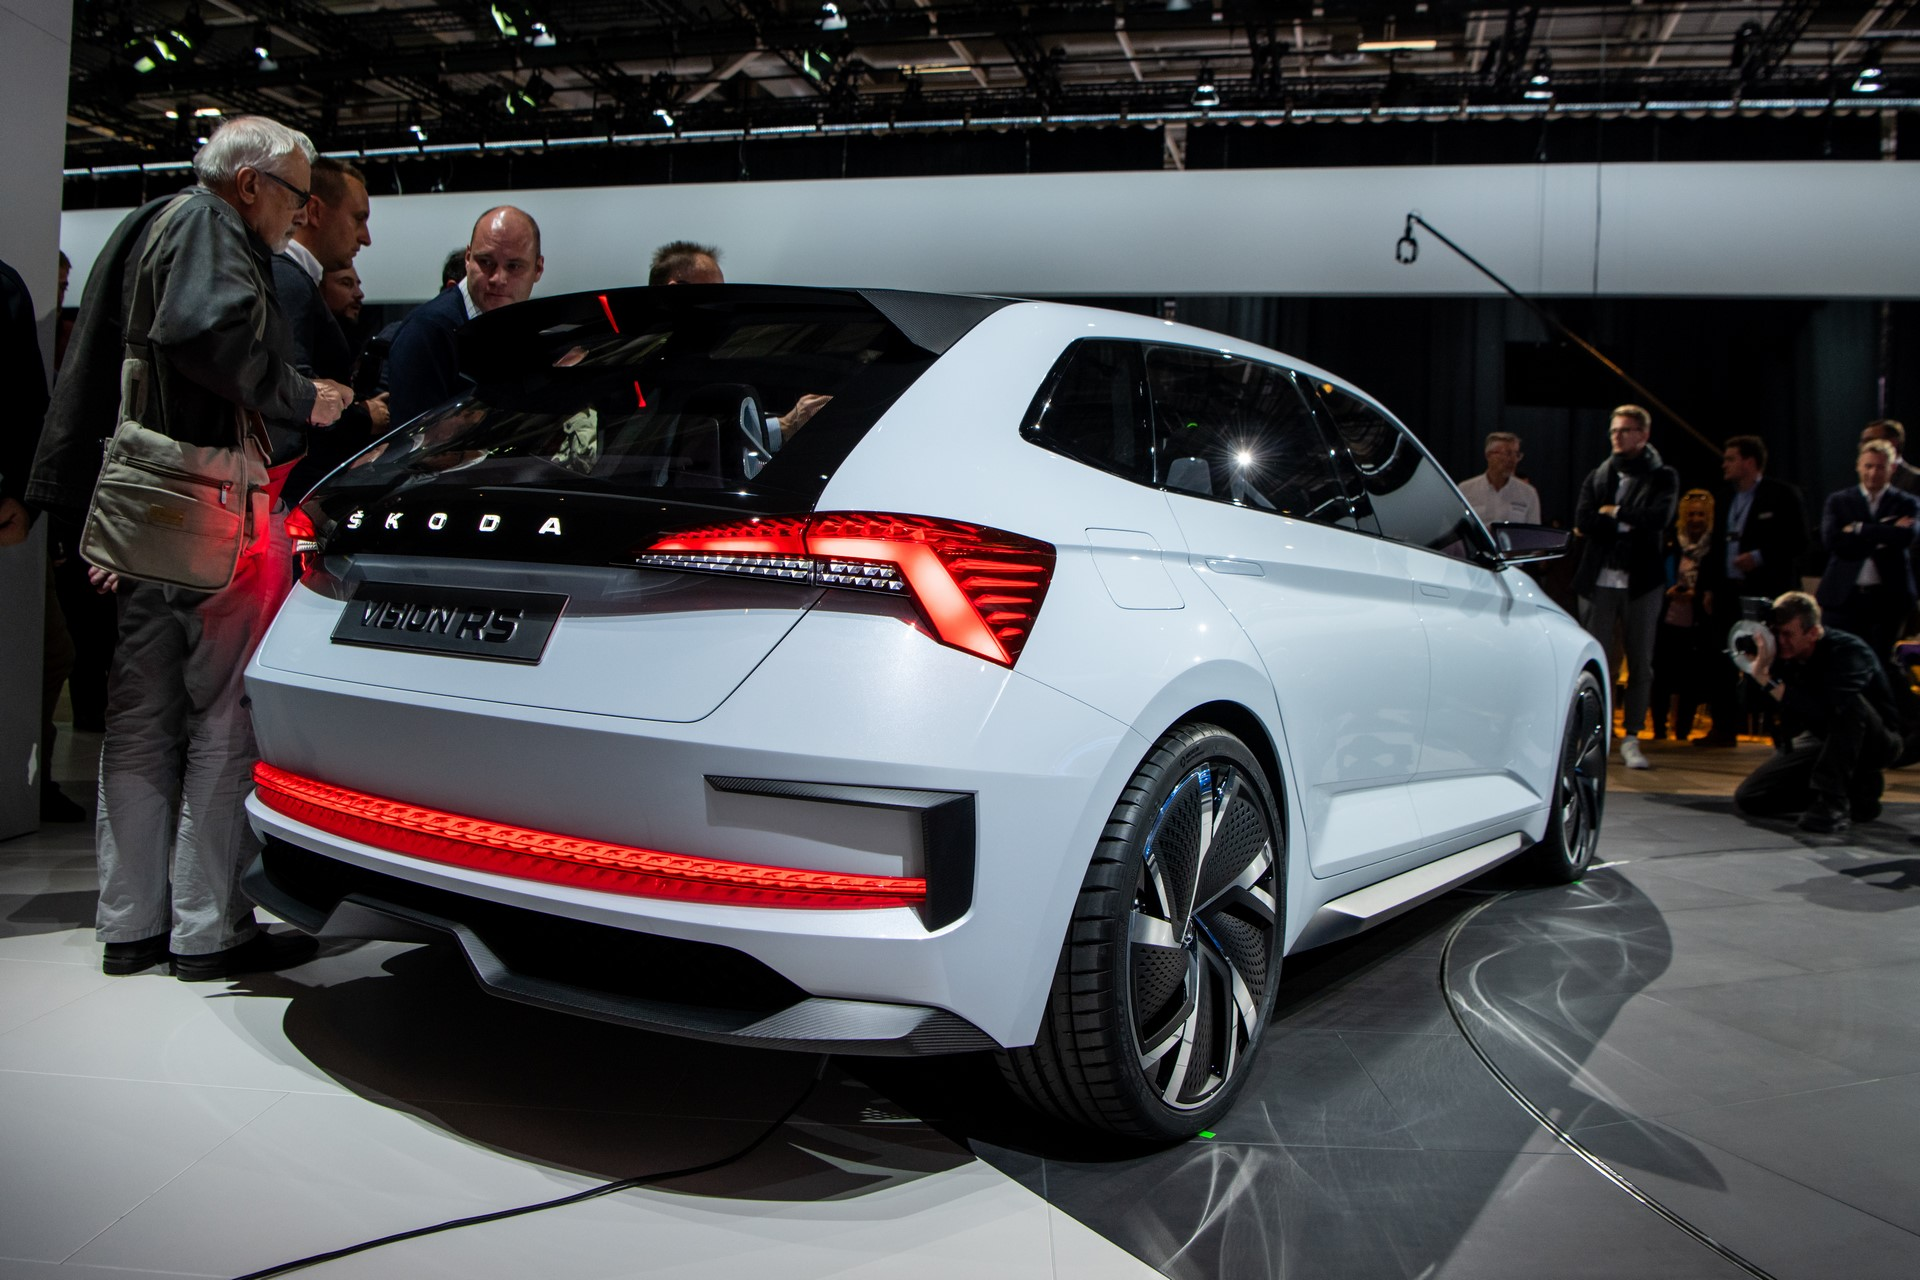 vision-rs-skoda-sneak-premiere-paris